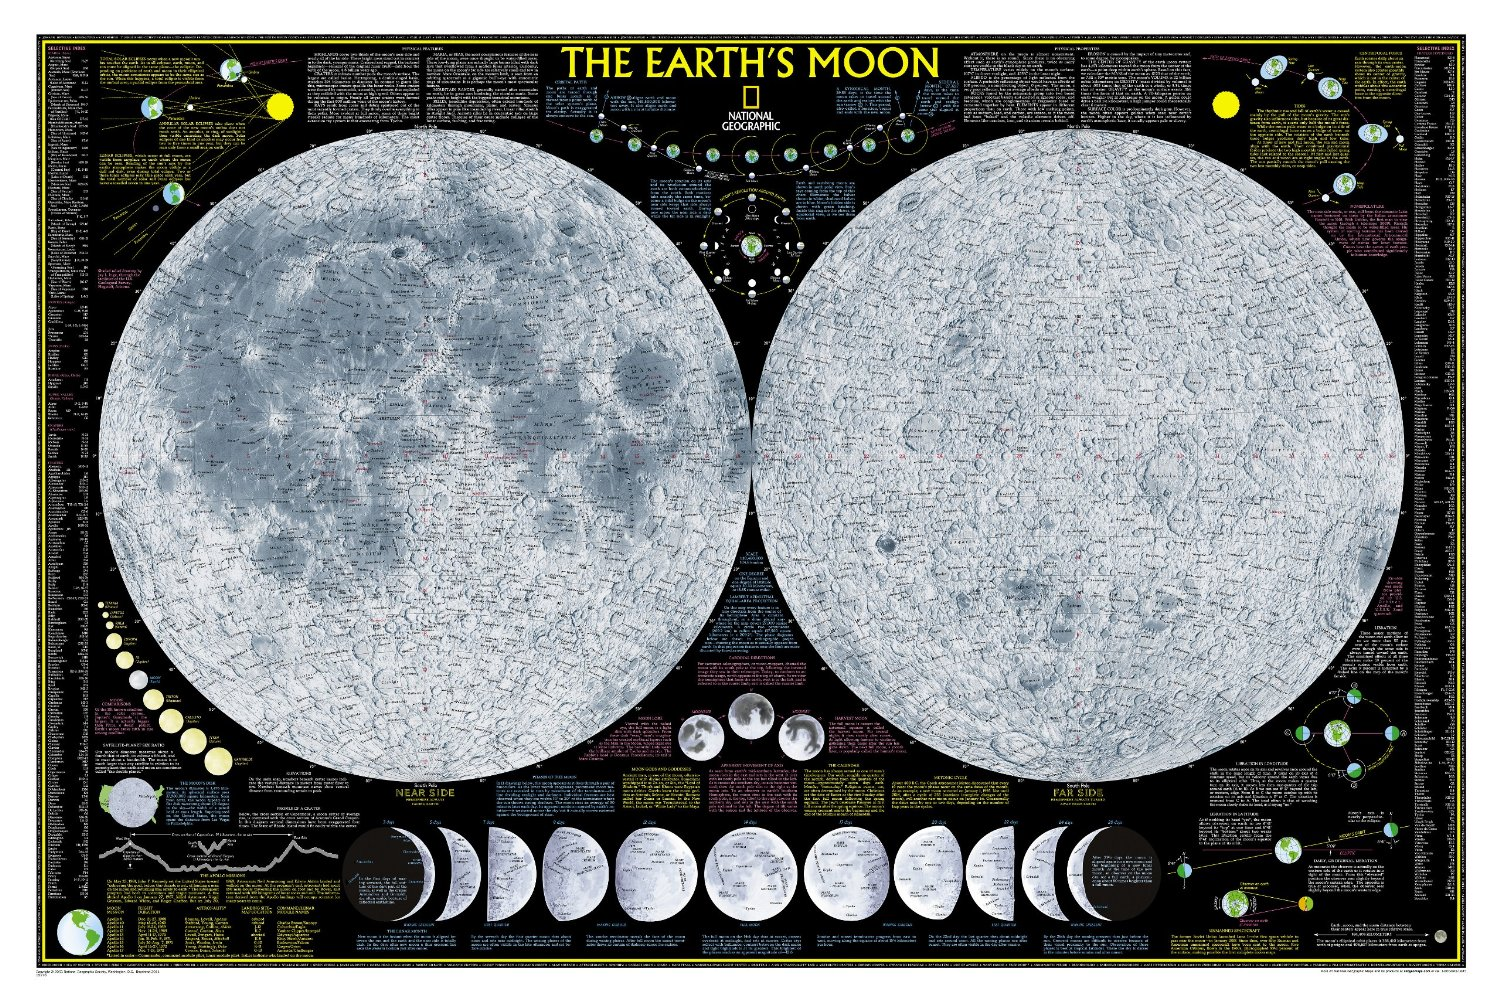 hight resolution of the earth s moon click to view detailed image